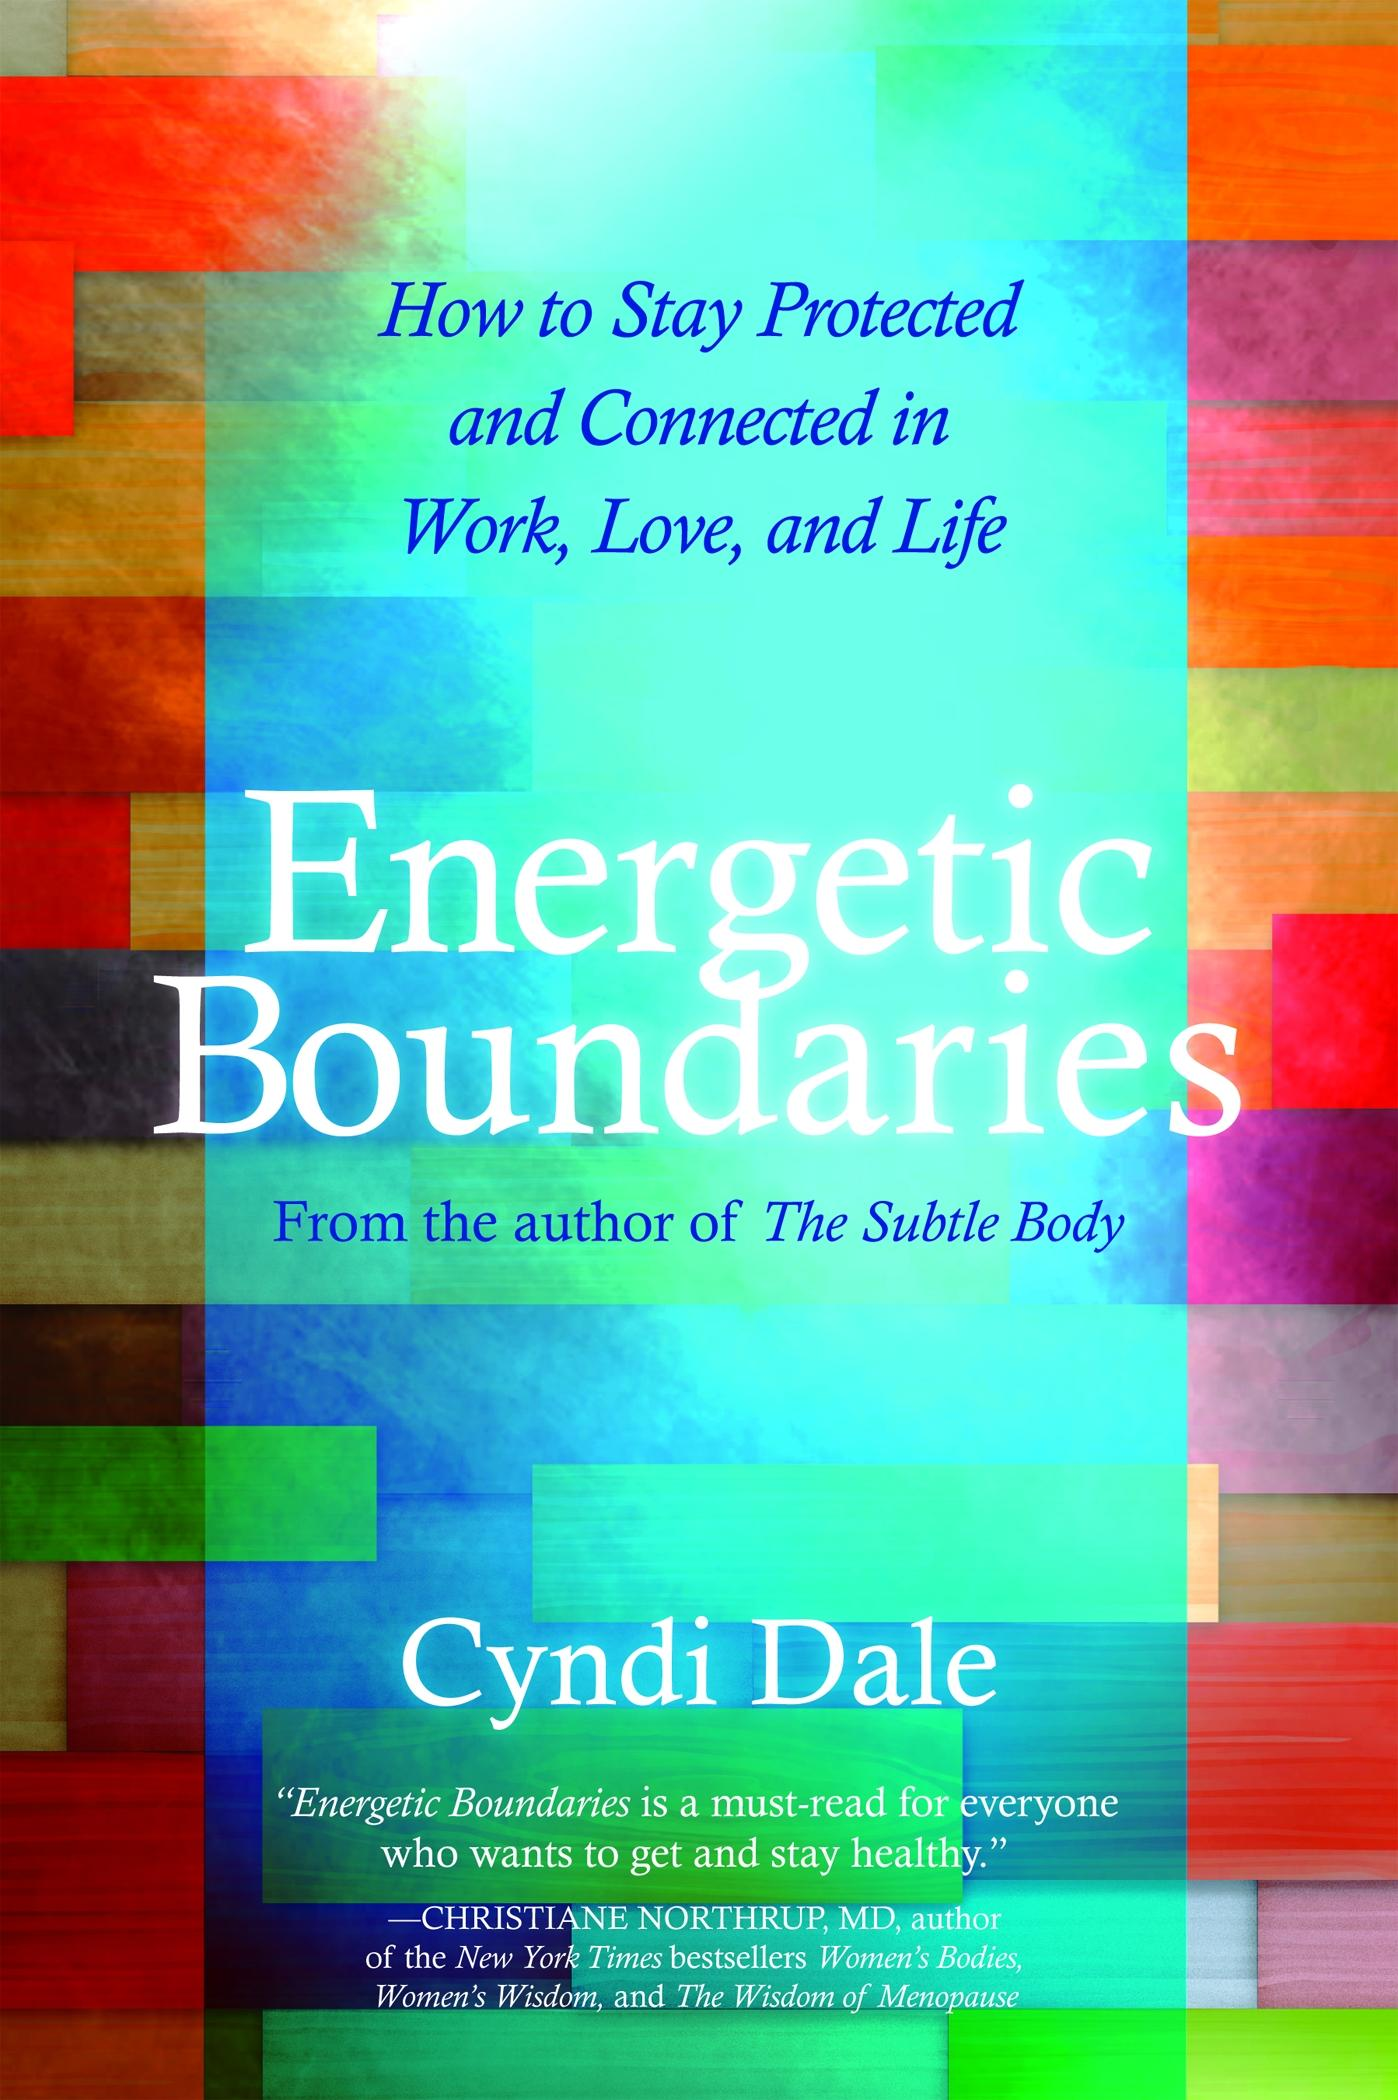 Energetic Boundaries: How to Stay Protected and Connected in Work, Love, and Life EB2370003841978